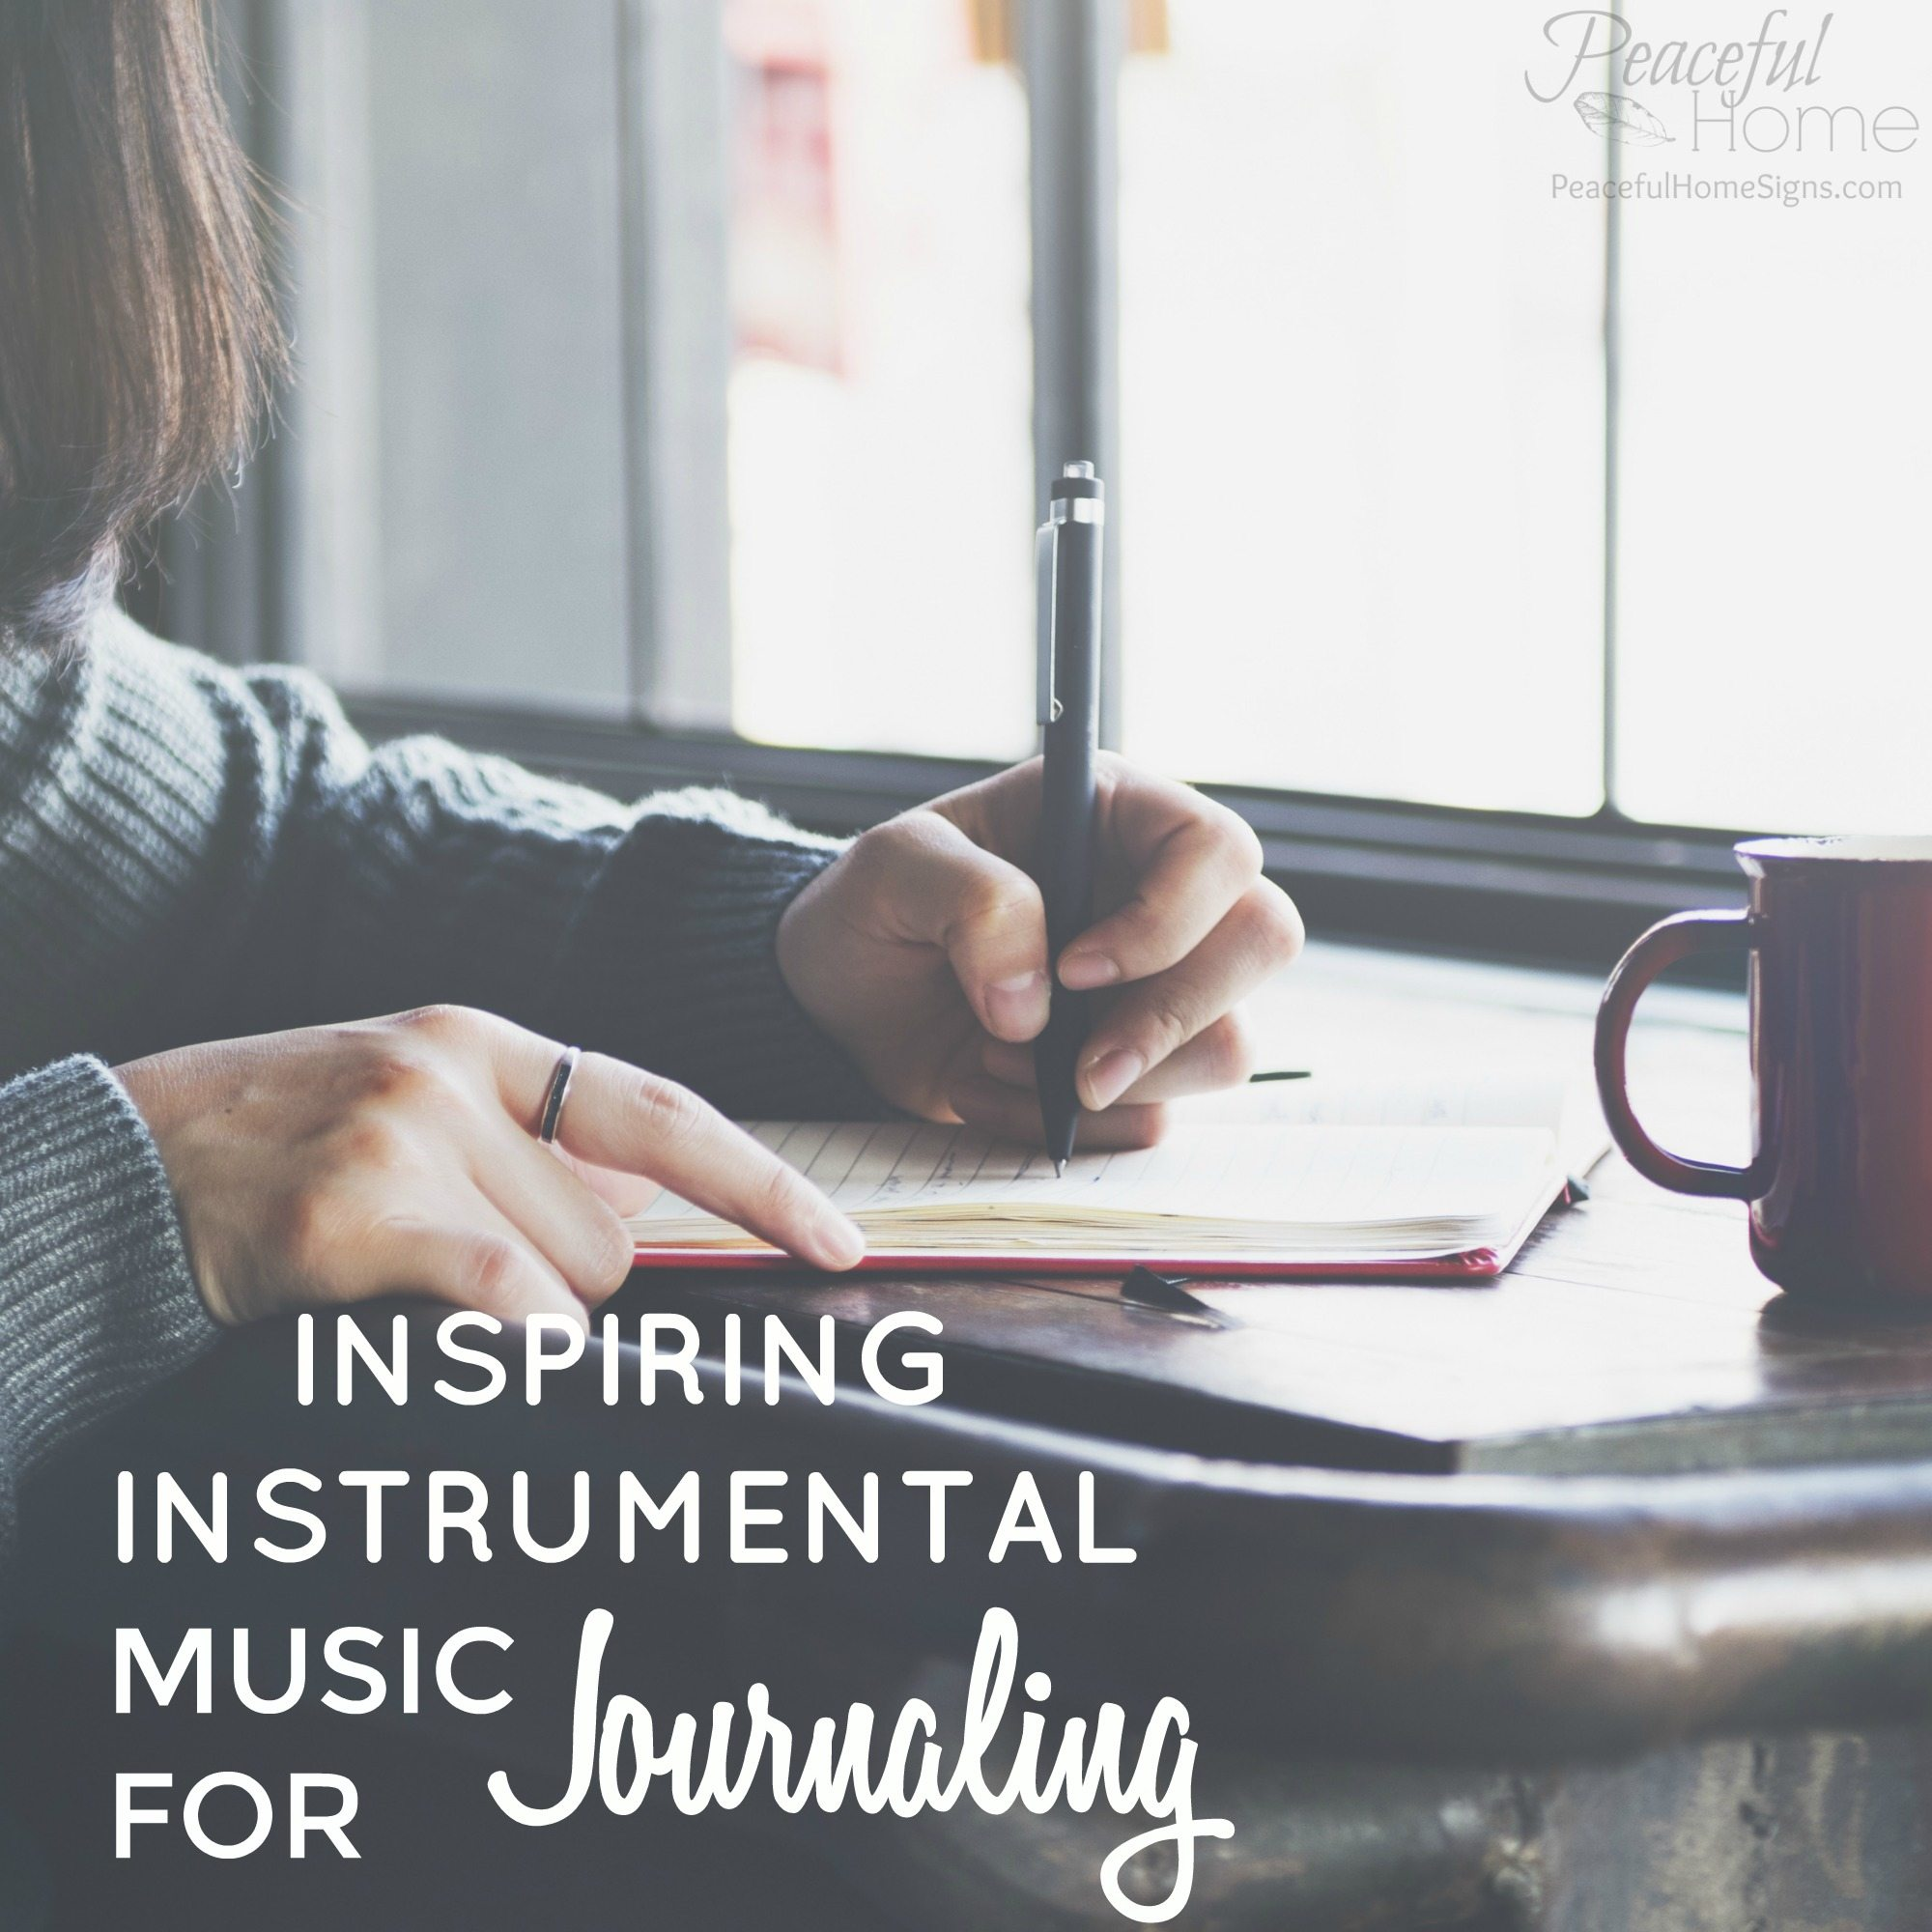 Inspiring Instrumental Music for Journaling